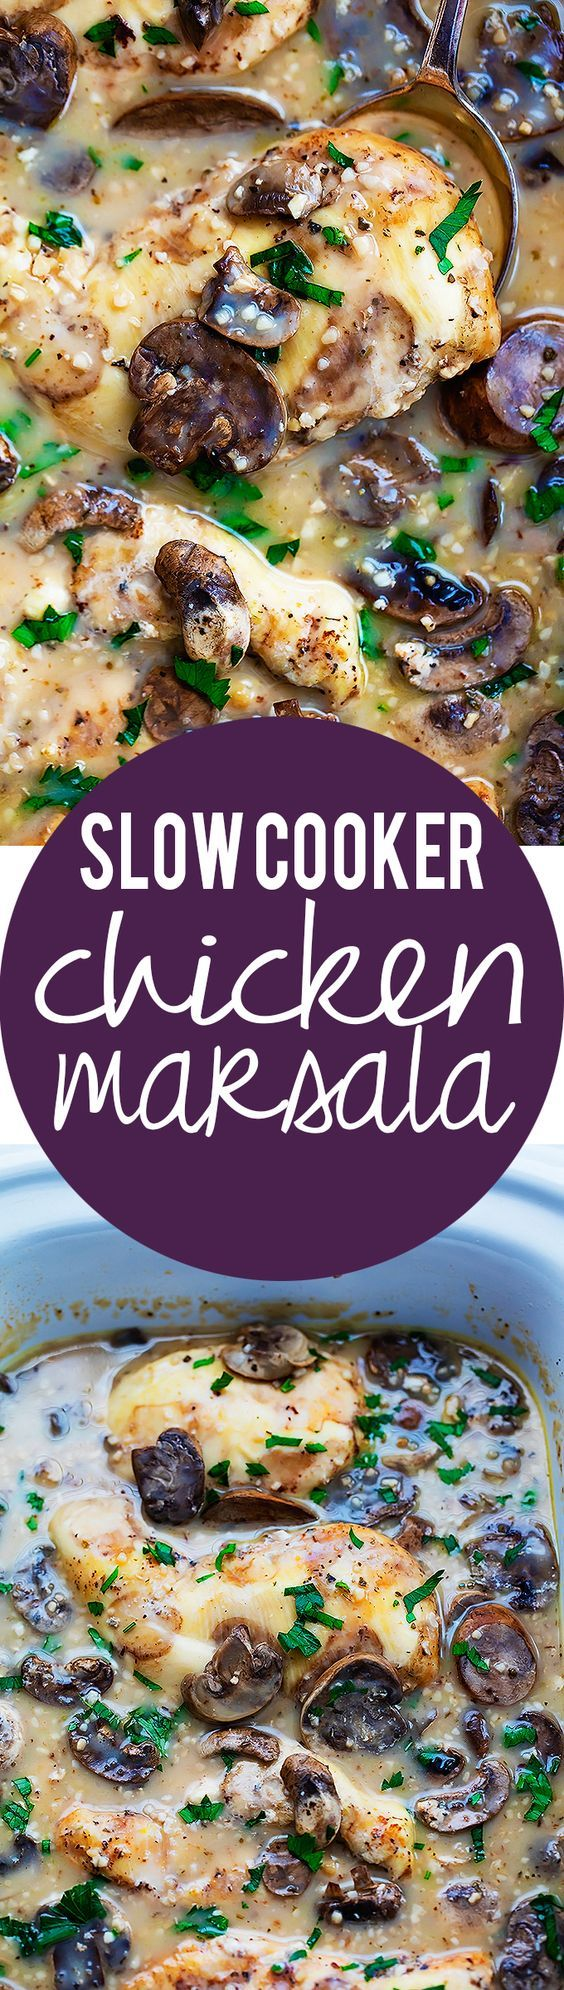 Slow Cooker Chicken Marsala Recipe plus 49 of the most pinned crock pot recipes